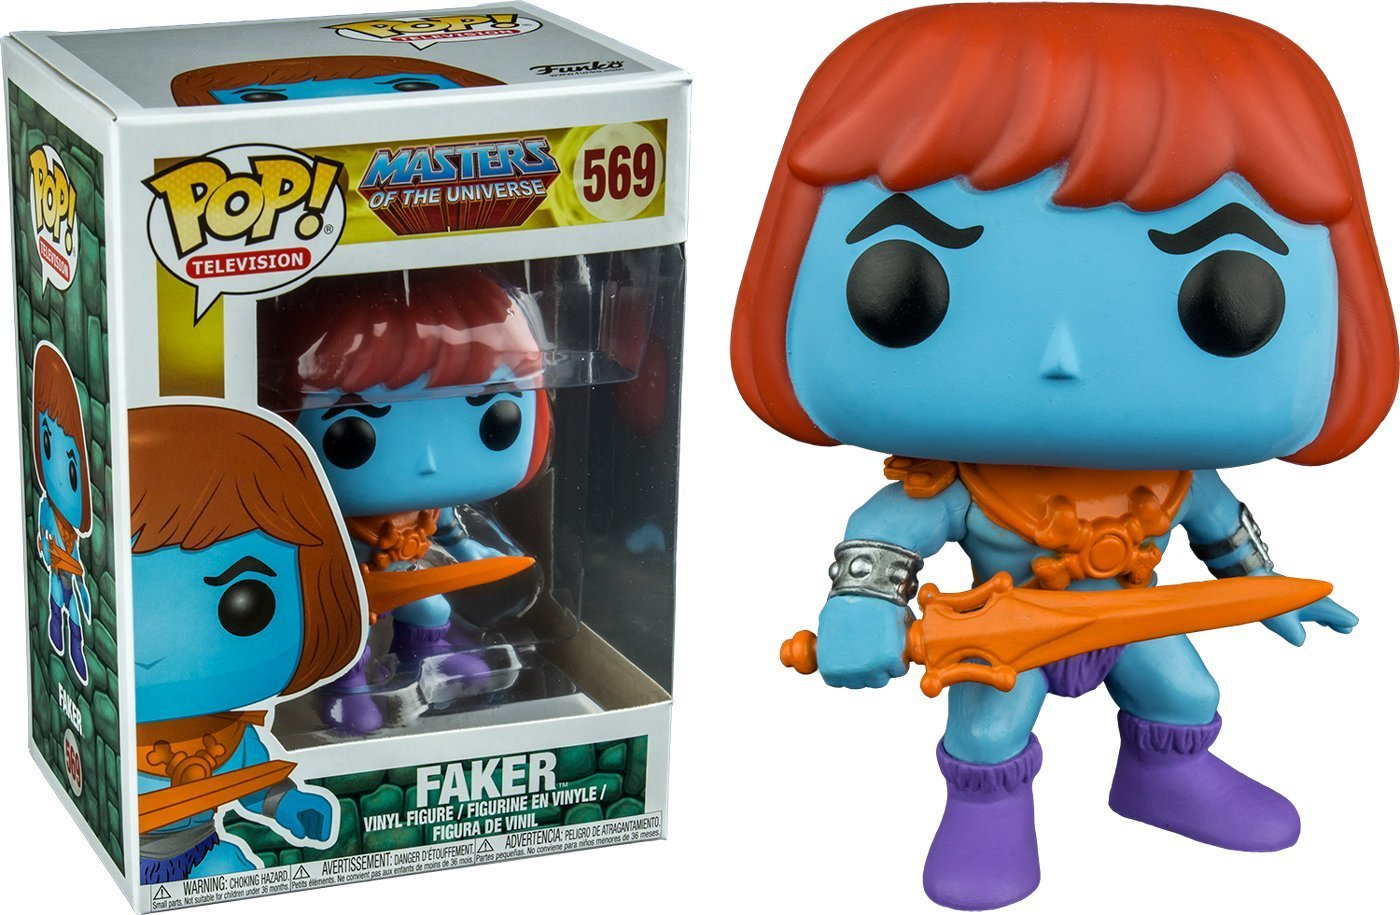 Exclusive Funko pop Masters of the Universe - Faker Vinyl Action Figure Collectible Model Toy with Original Box hannibal funko figure will graham funko pop vinyl figures funko 3 75 vinyl figures hannibal pop funko doll toy